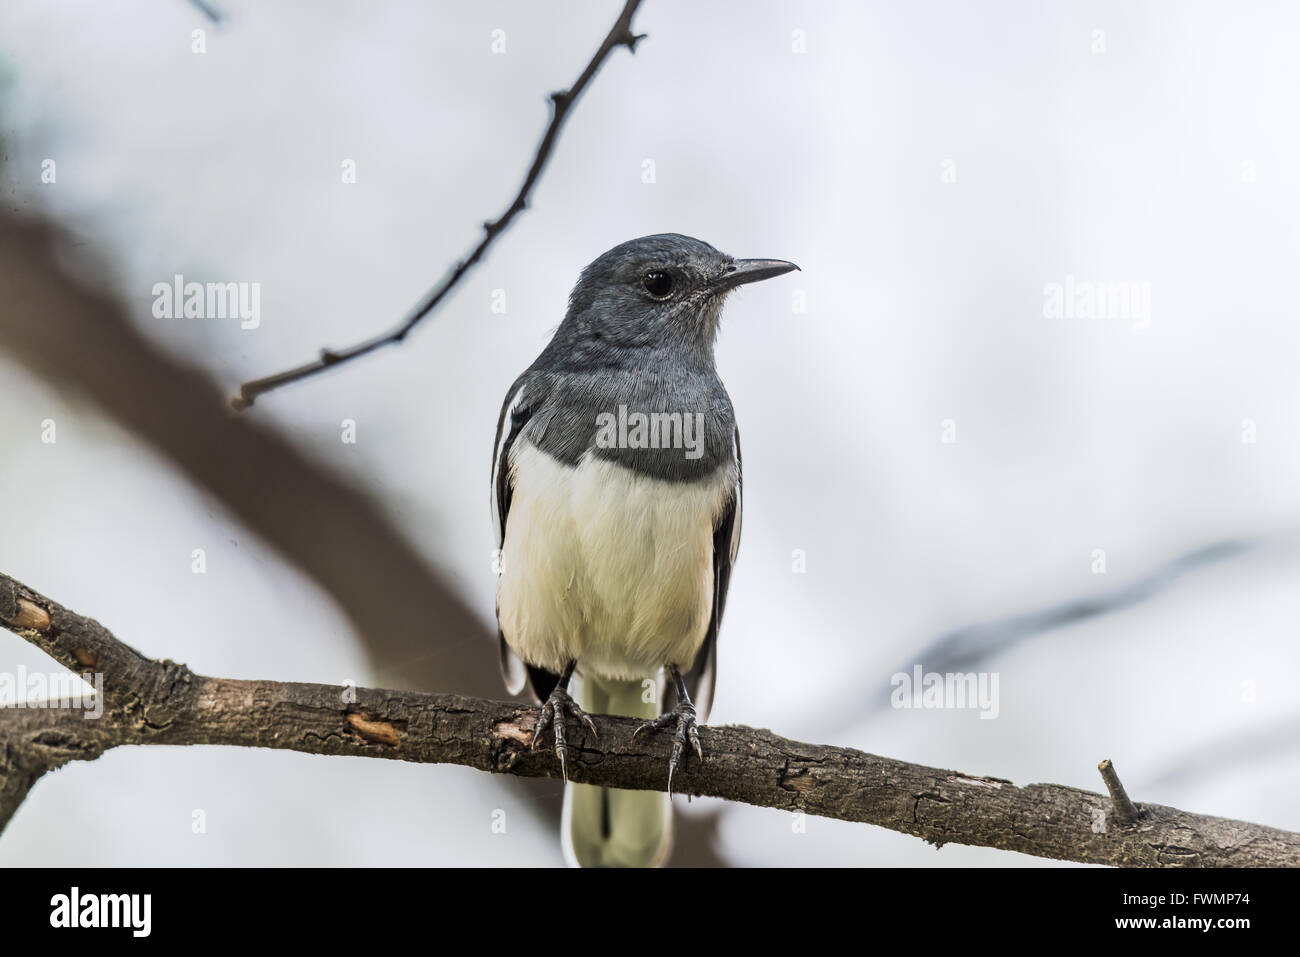 Oriental magpie-robin is a small passerine bird that was formerly classed as a member of the thrush family Turdidae, - Stock Image